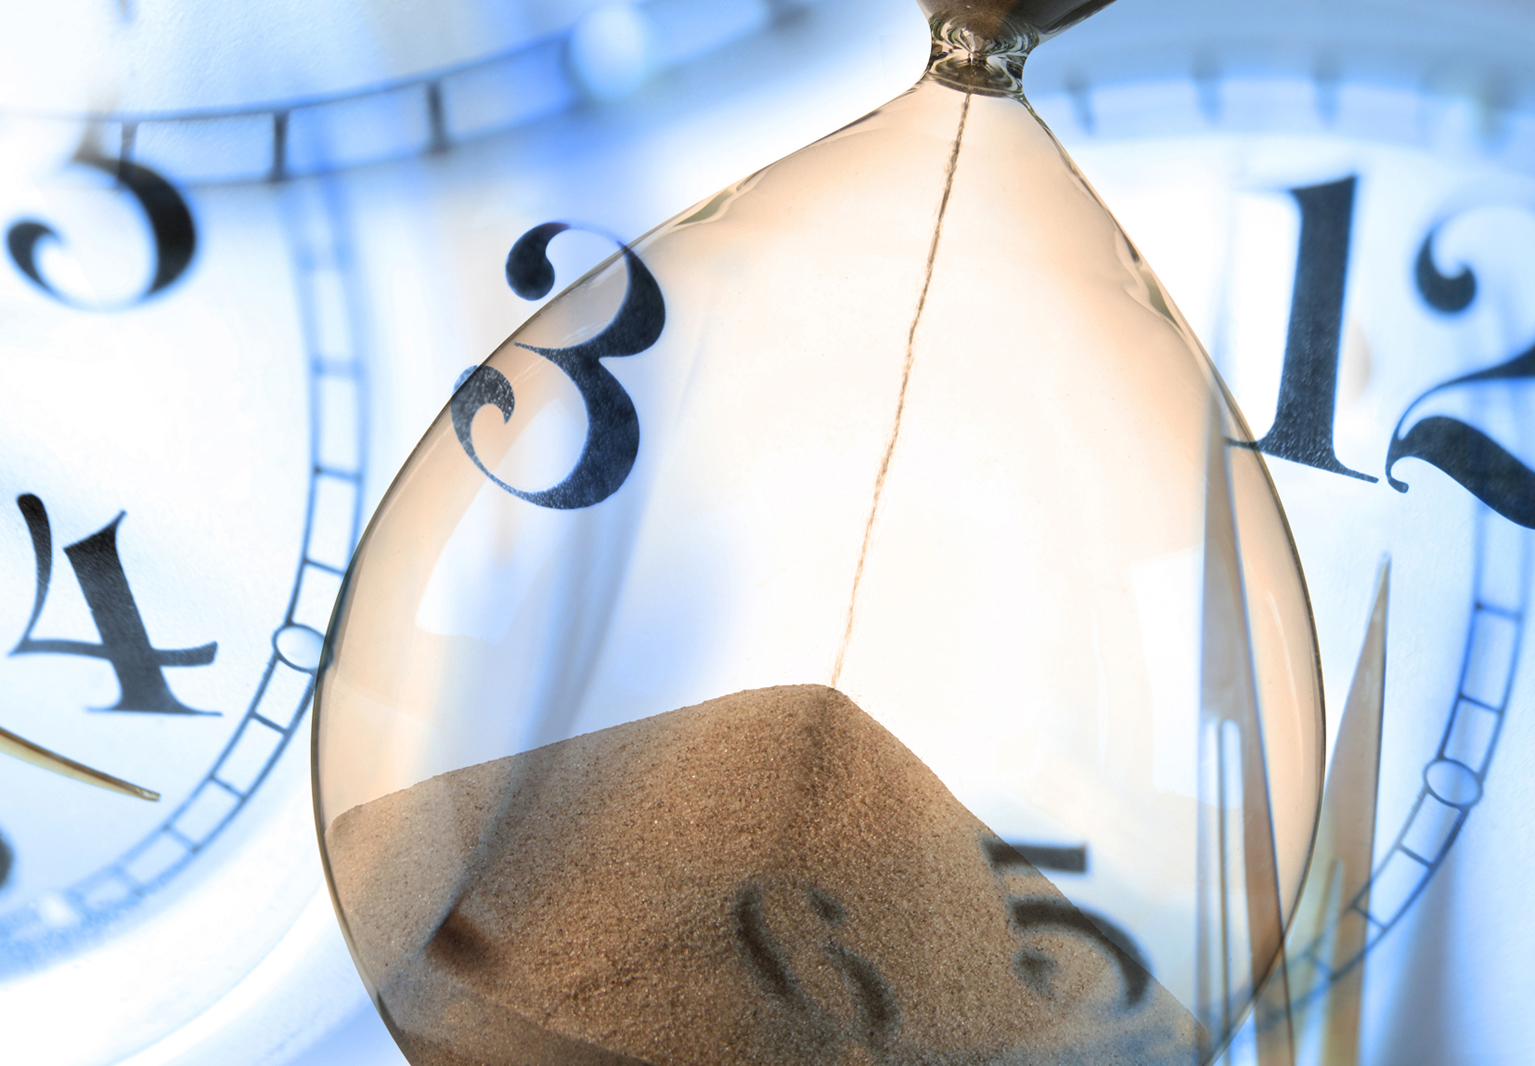 abstract-time-brown-hourglass-sand-and-blue-clockfaces